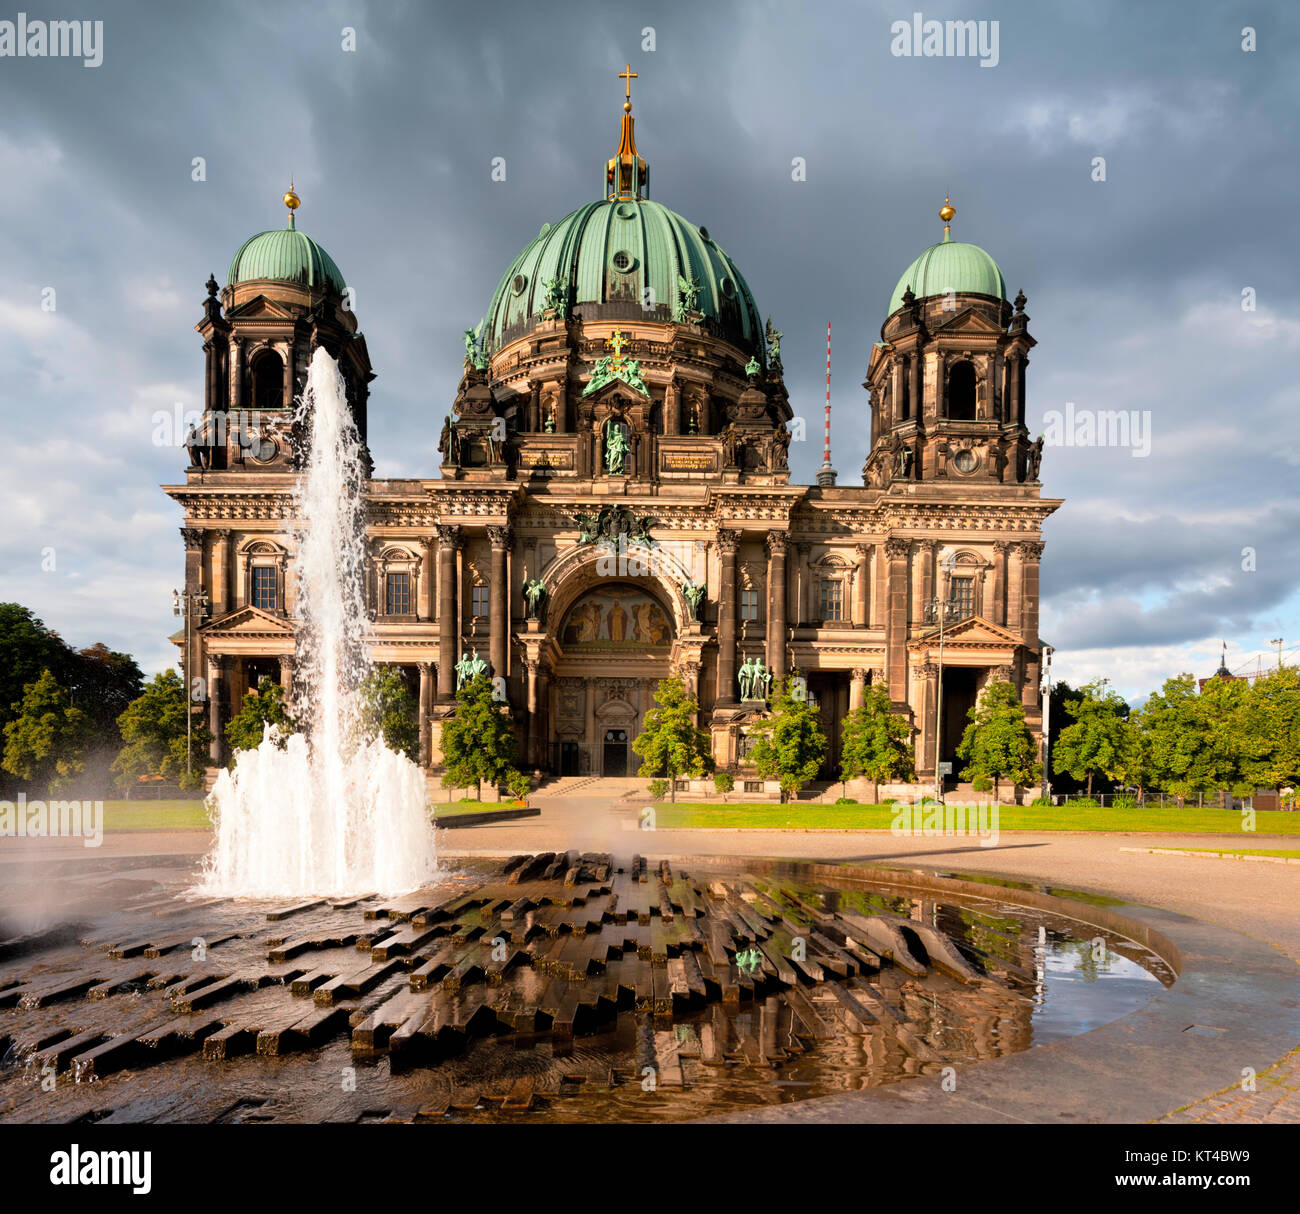 Berlin Cathedral, or Berliner Dom, with a fountain in front - Stock Image